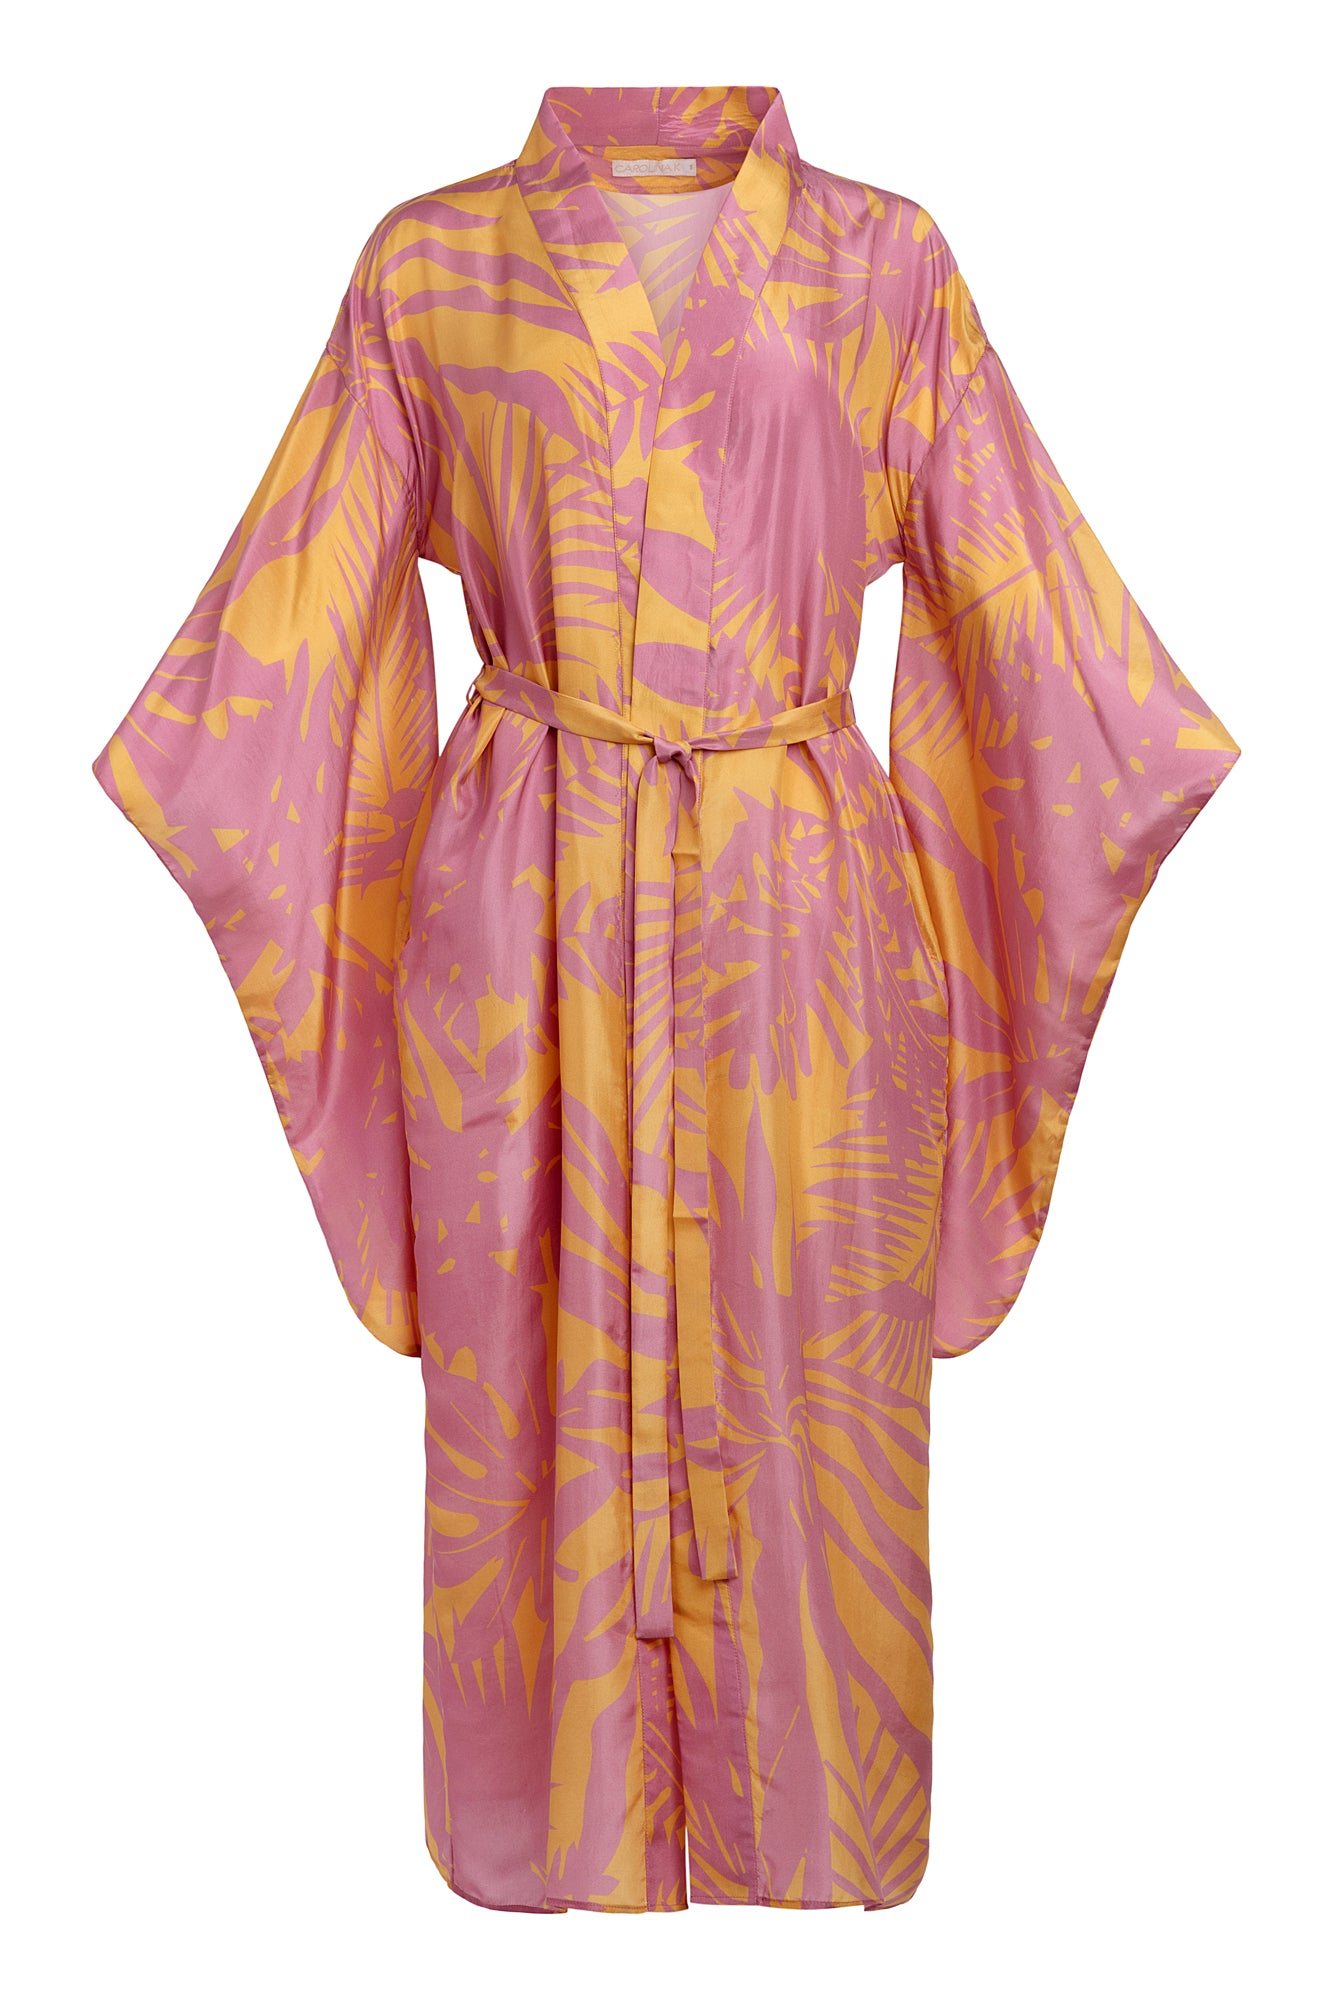 Carolina K Samantha Kimono in Sunset Yellow